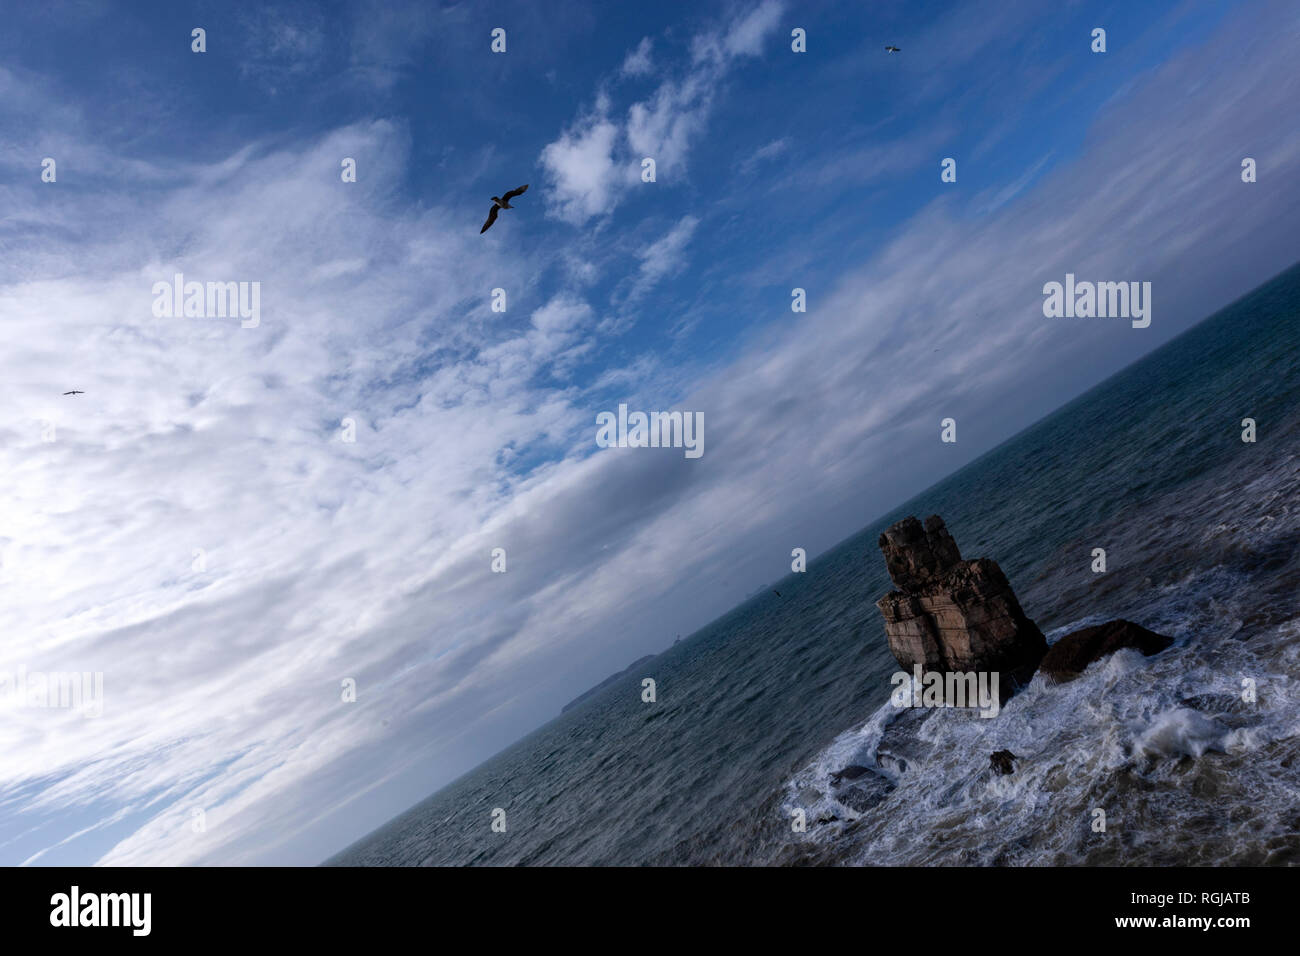 Nau dos Corvos, (Carrack of Crows) at Cabo Carvoeiro, with Berlengas in the background, Peniche peninsula, Portugal - Stock Image